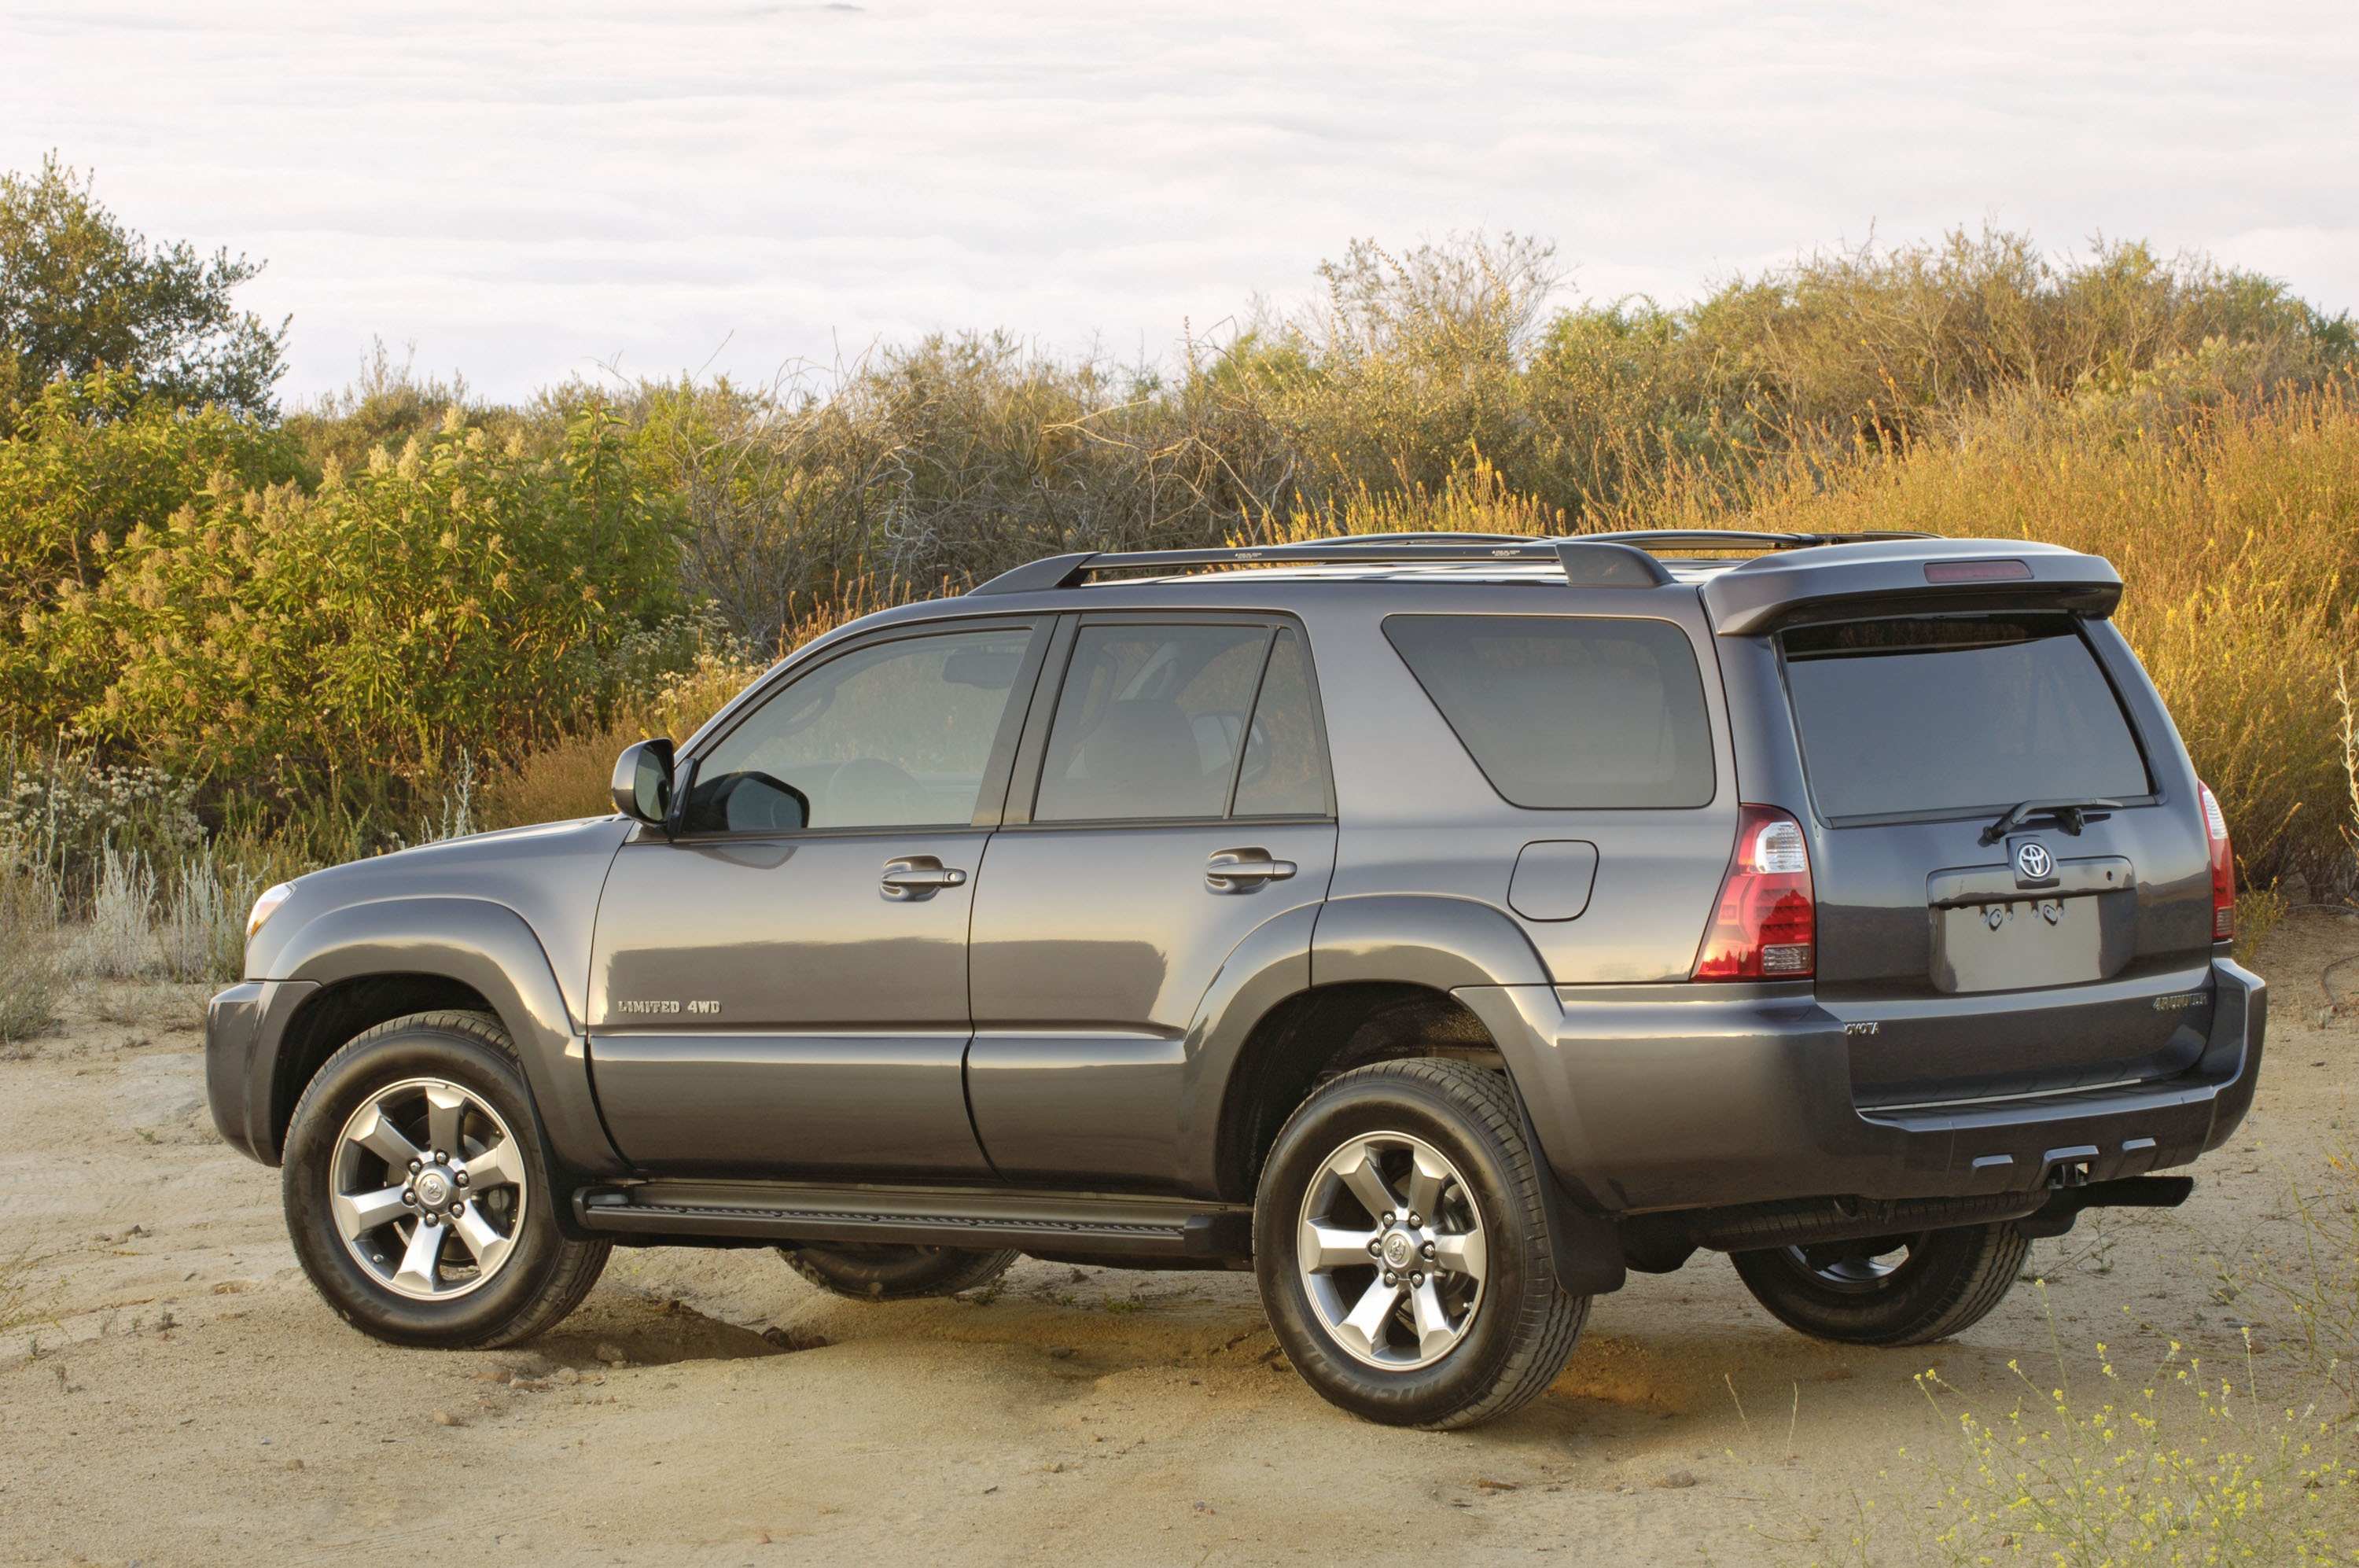 toyota 4runner 2009 review amazing pictures and images. Black Bedroom Furniture Sets. Home Design Ideas